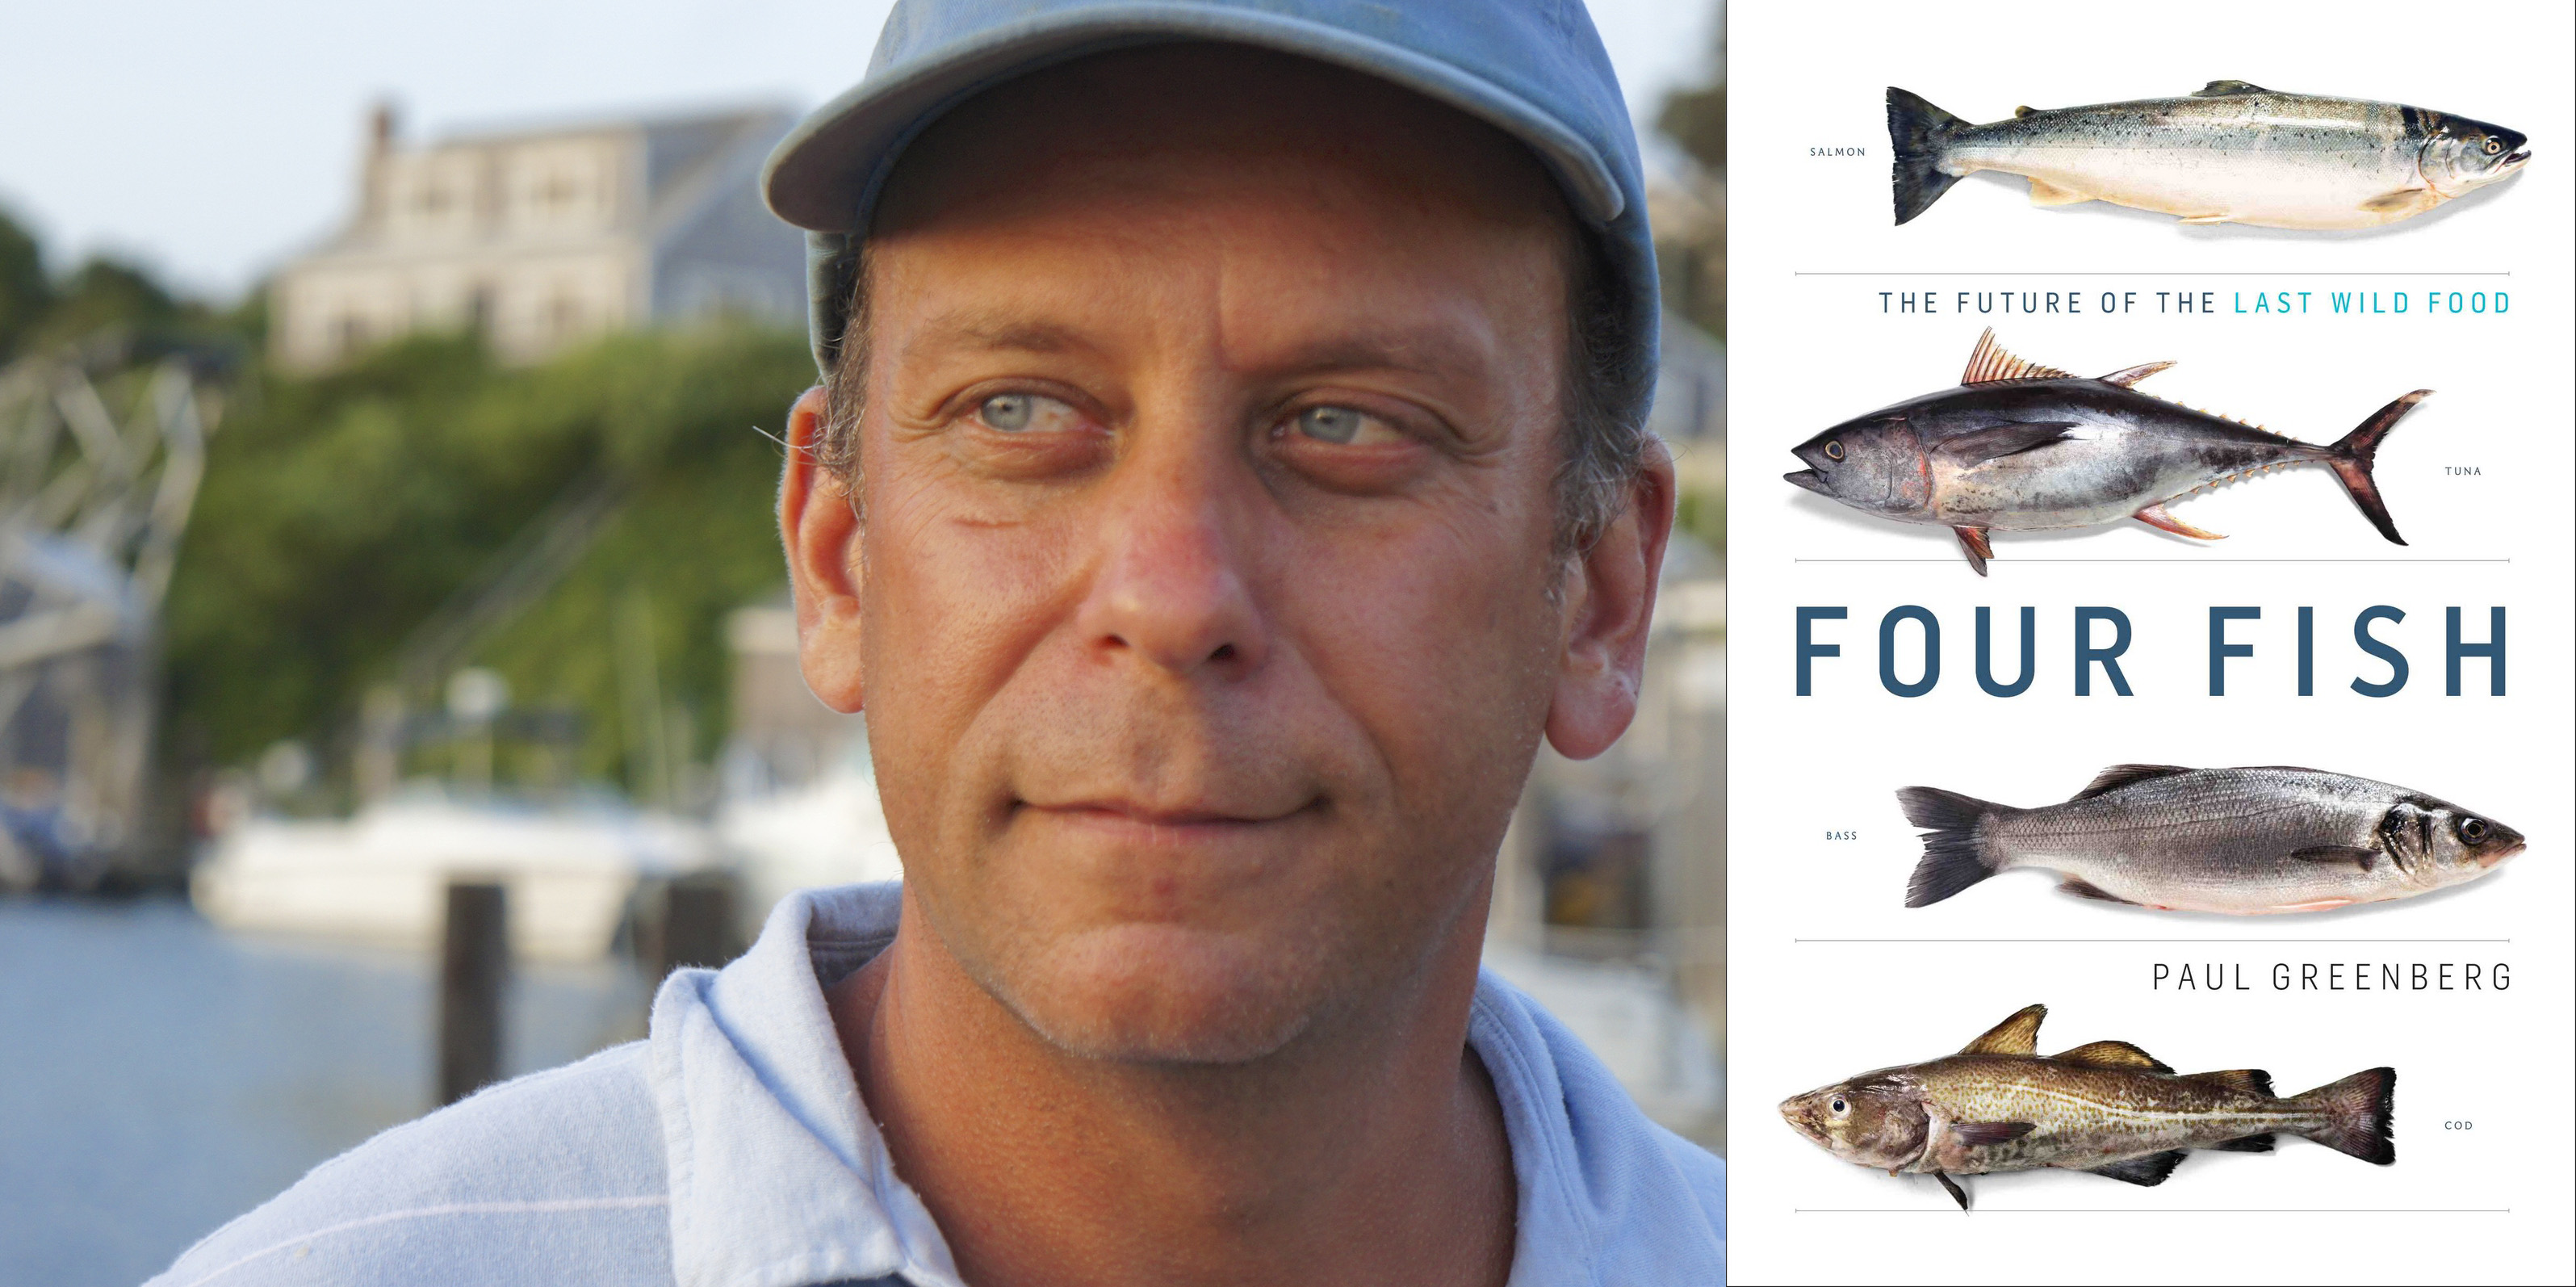 Four Fish: The Future of the Last Wild Food and its author, Paul Greenberg